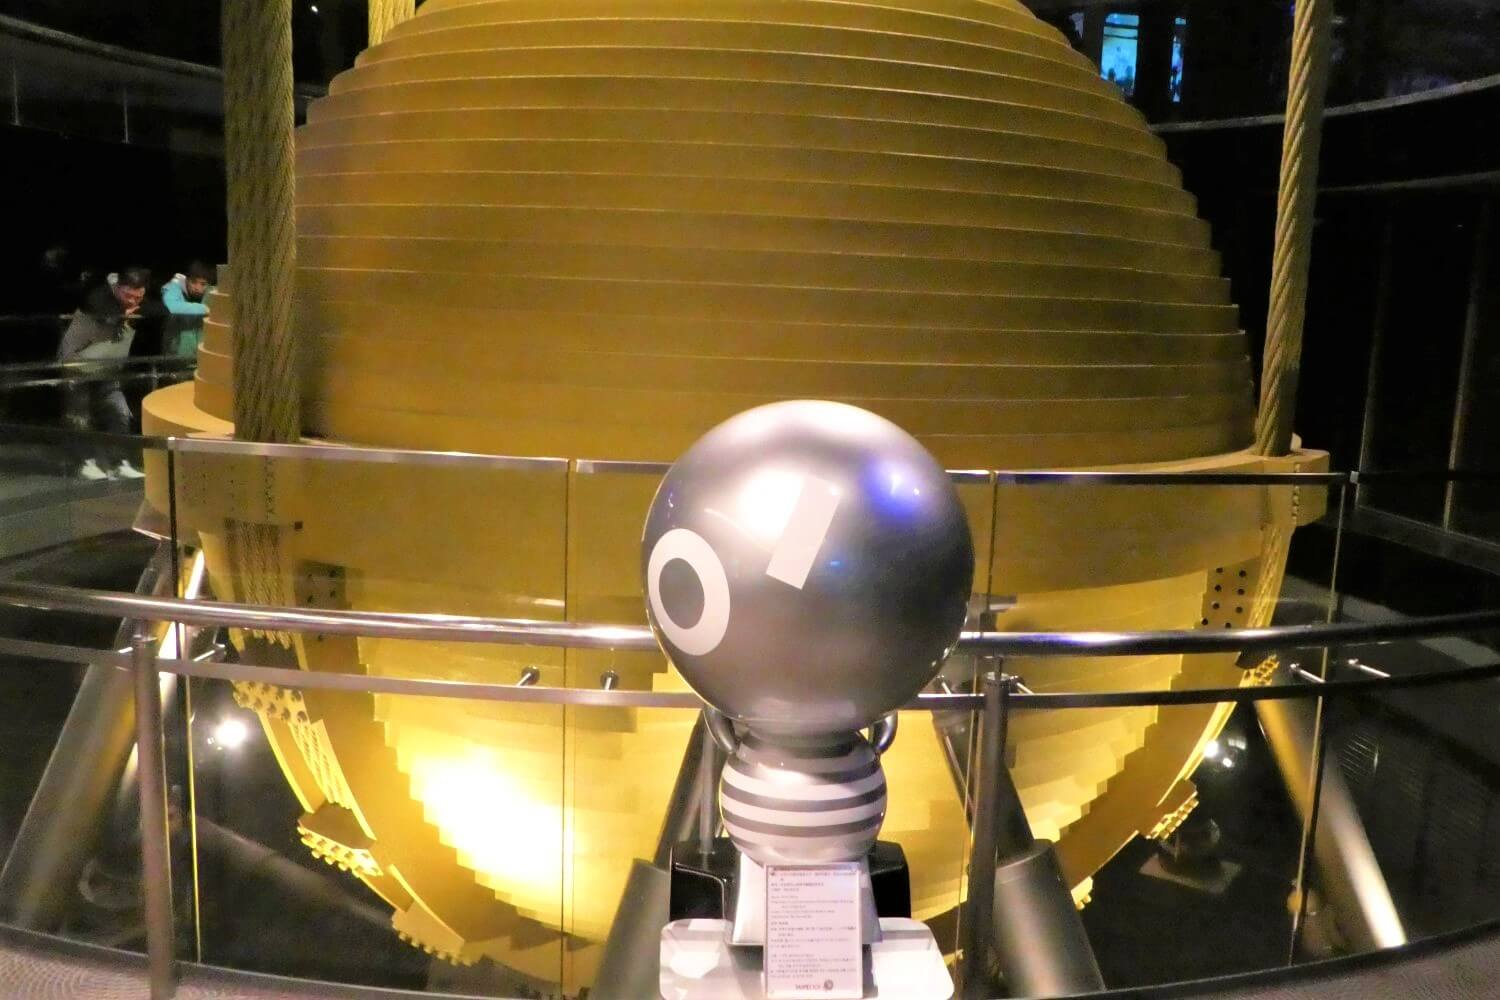 The Tuned Mass Damper in the Taipei 101